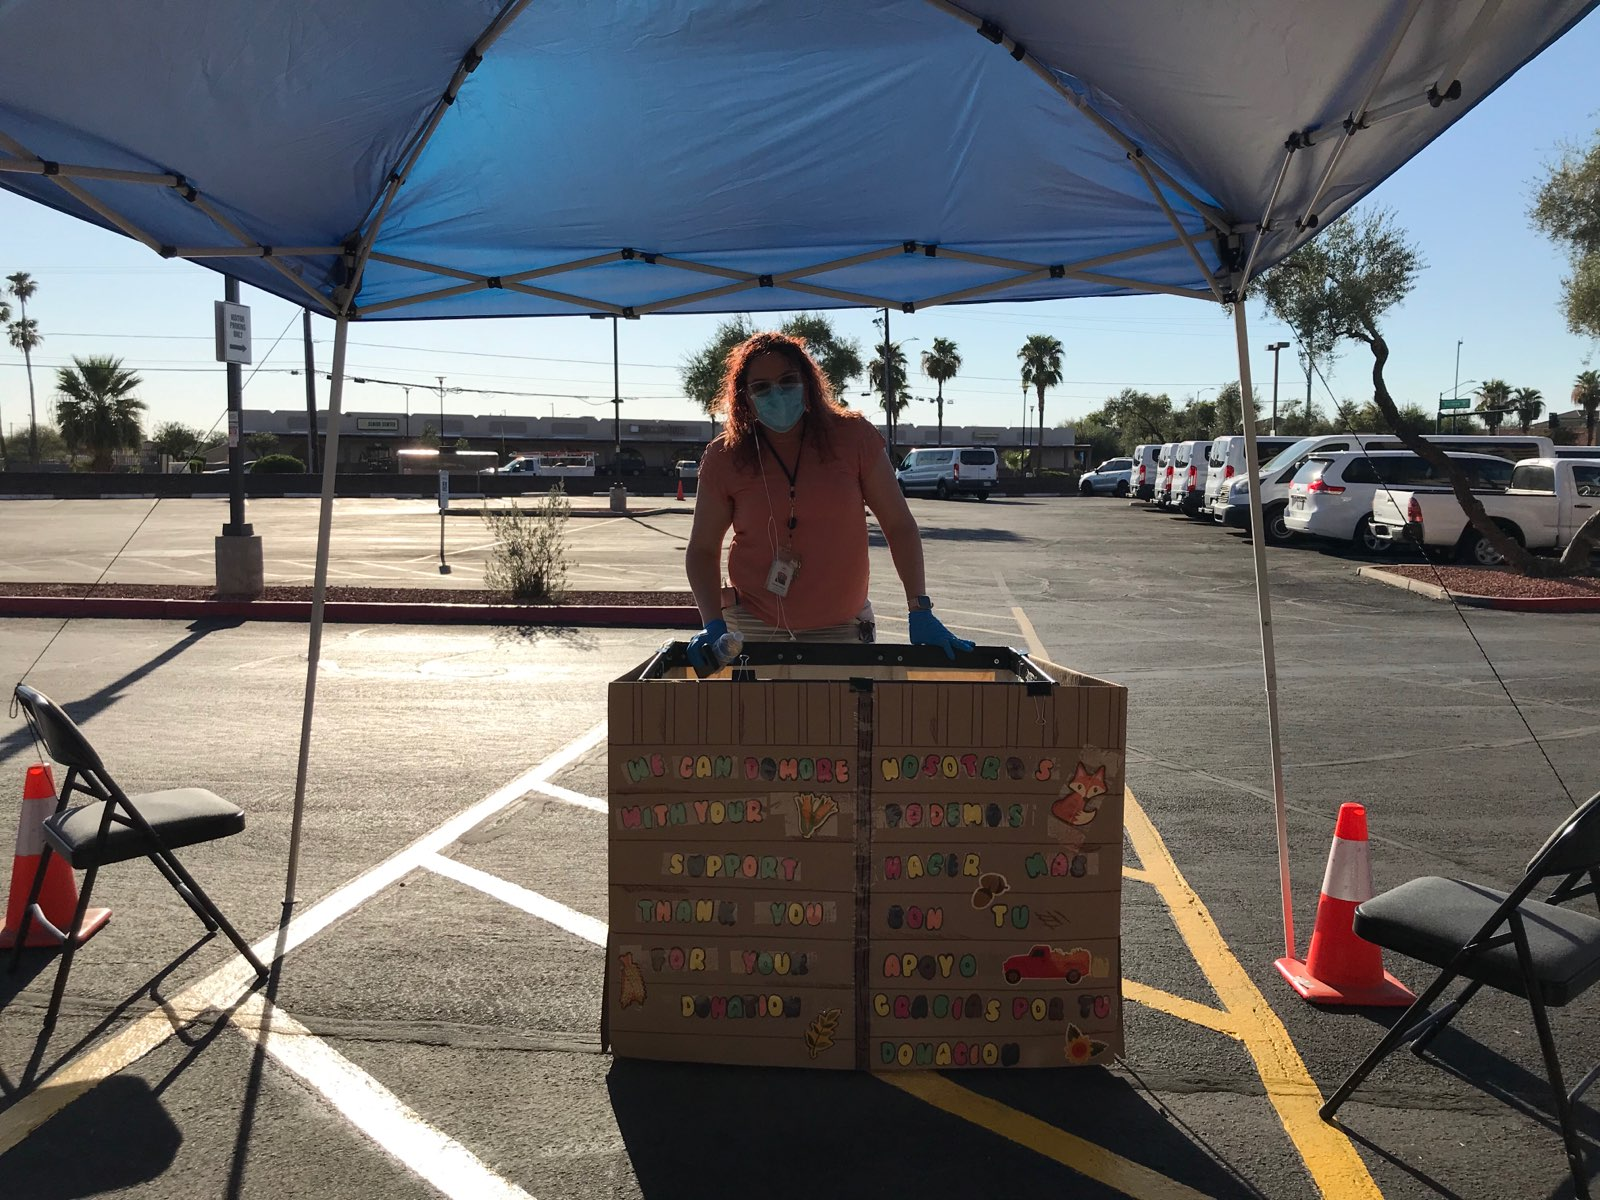 Person with a cart collecting donations